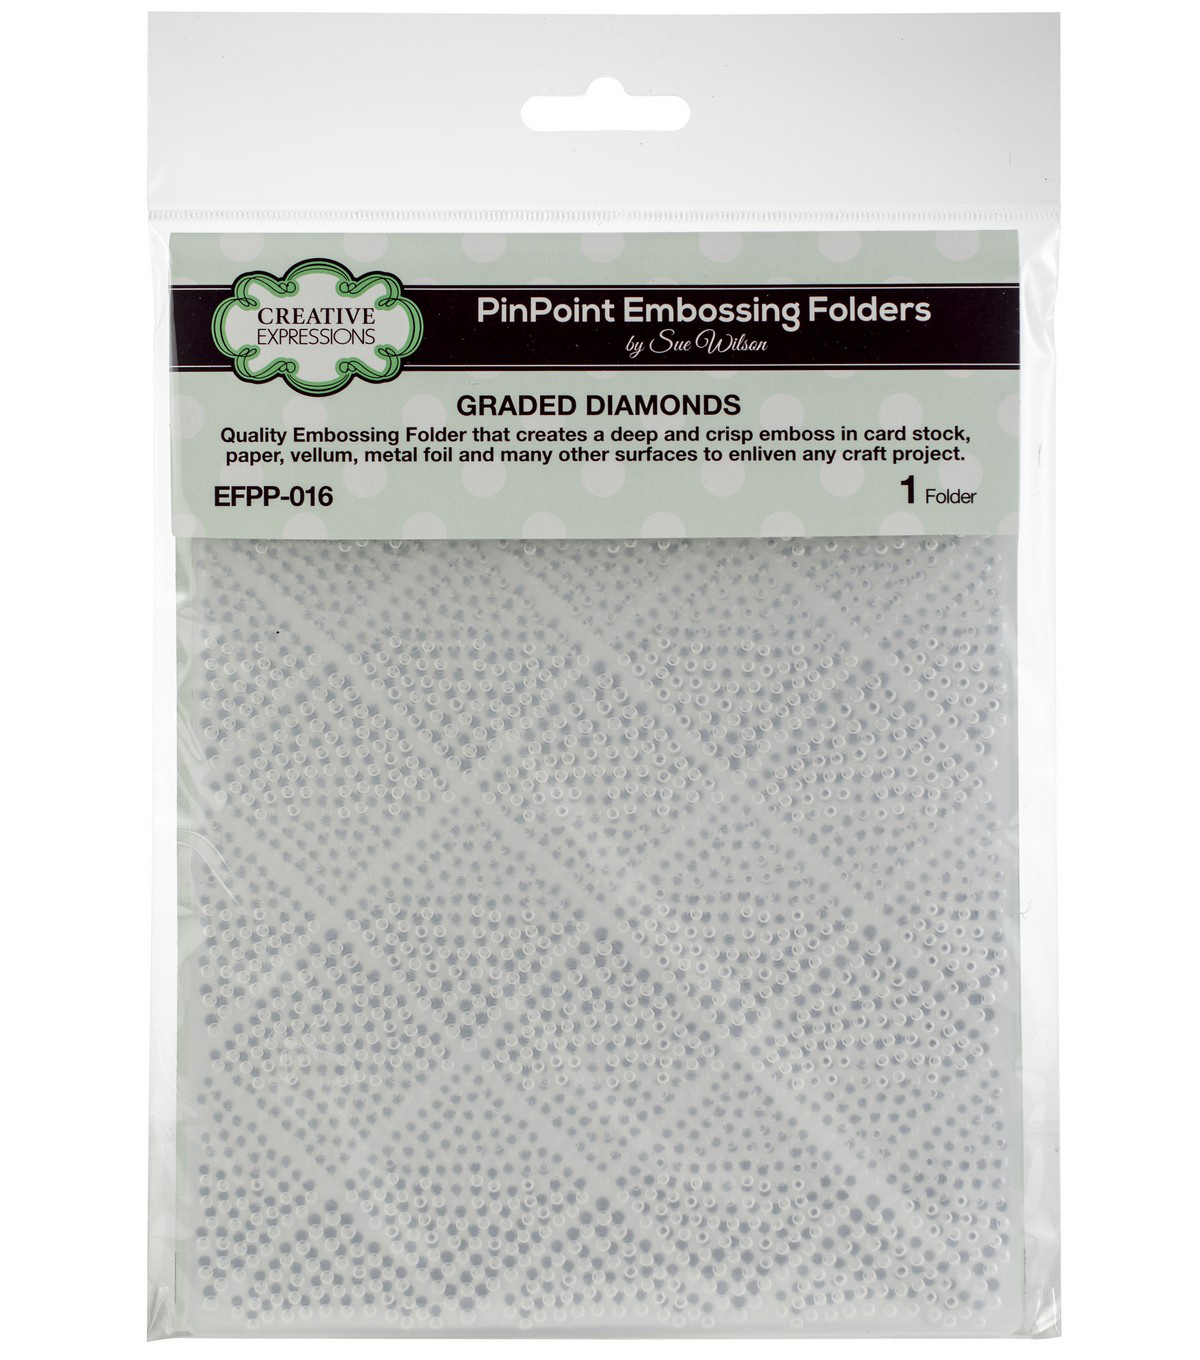 Creative Expressions Embossing Folder 5.75\u0022x7.5\u0022-Graded Diamonds